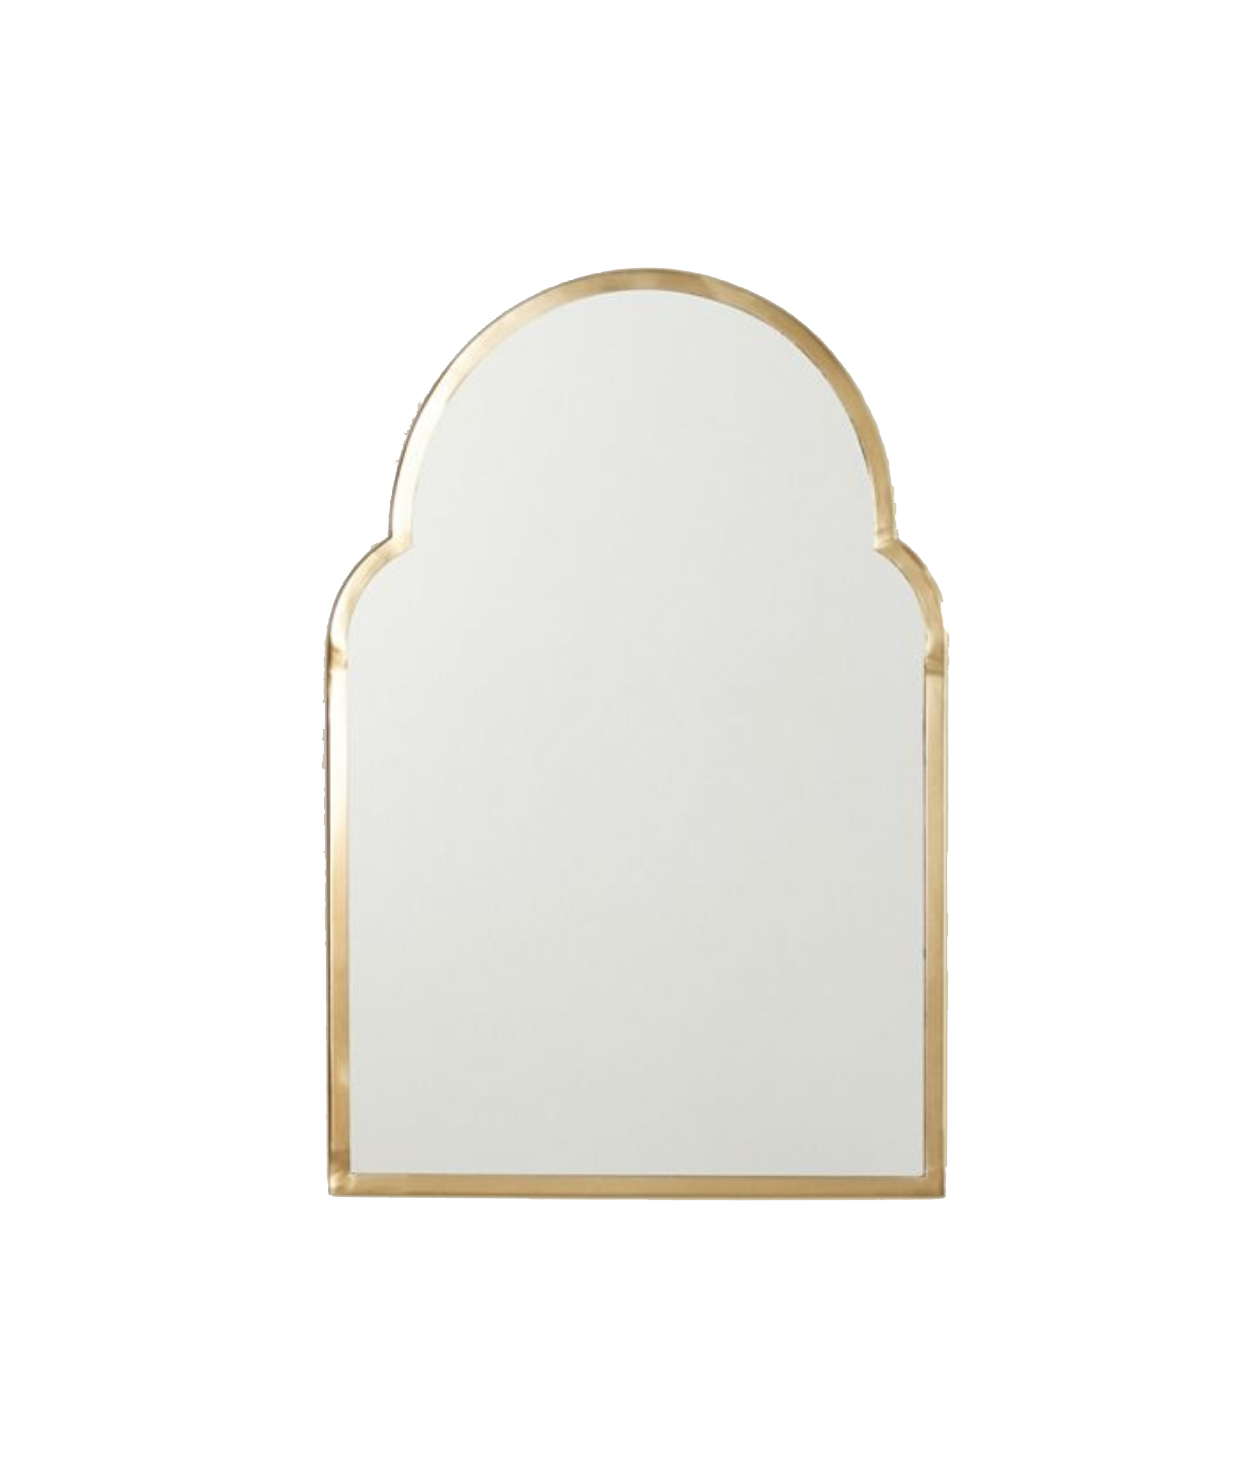 Mirrors Archives – Juniper Home Inside Gold Arch Wall Mirrors (View 22 of 30)